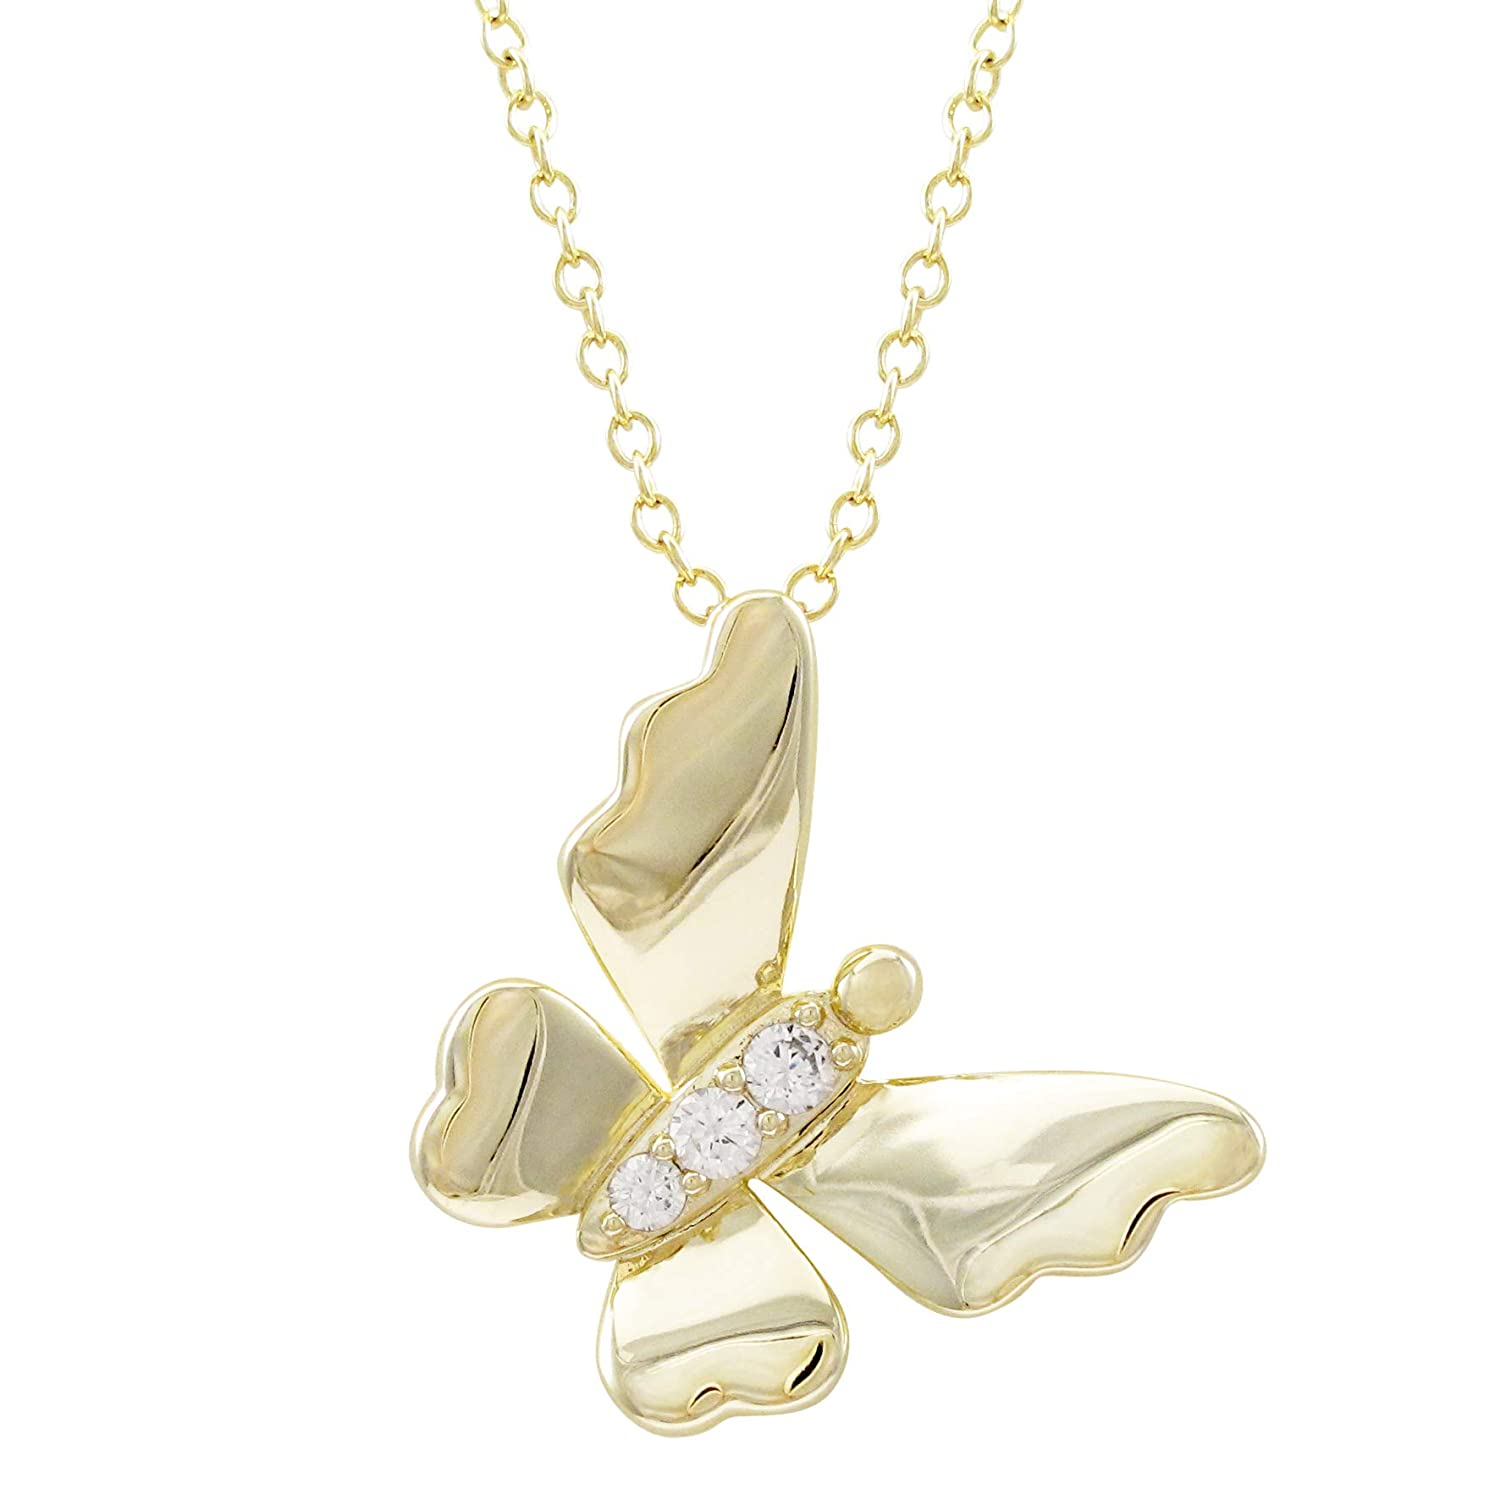 15+2 Extender Ivy and Max Gold Finish White Cubic Zirconia Butterfly Pendant Necklace